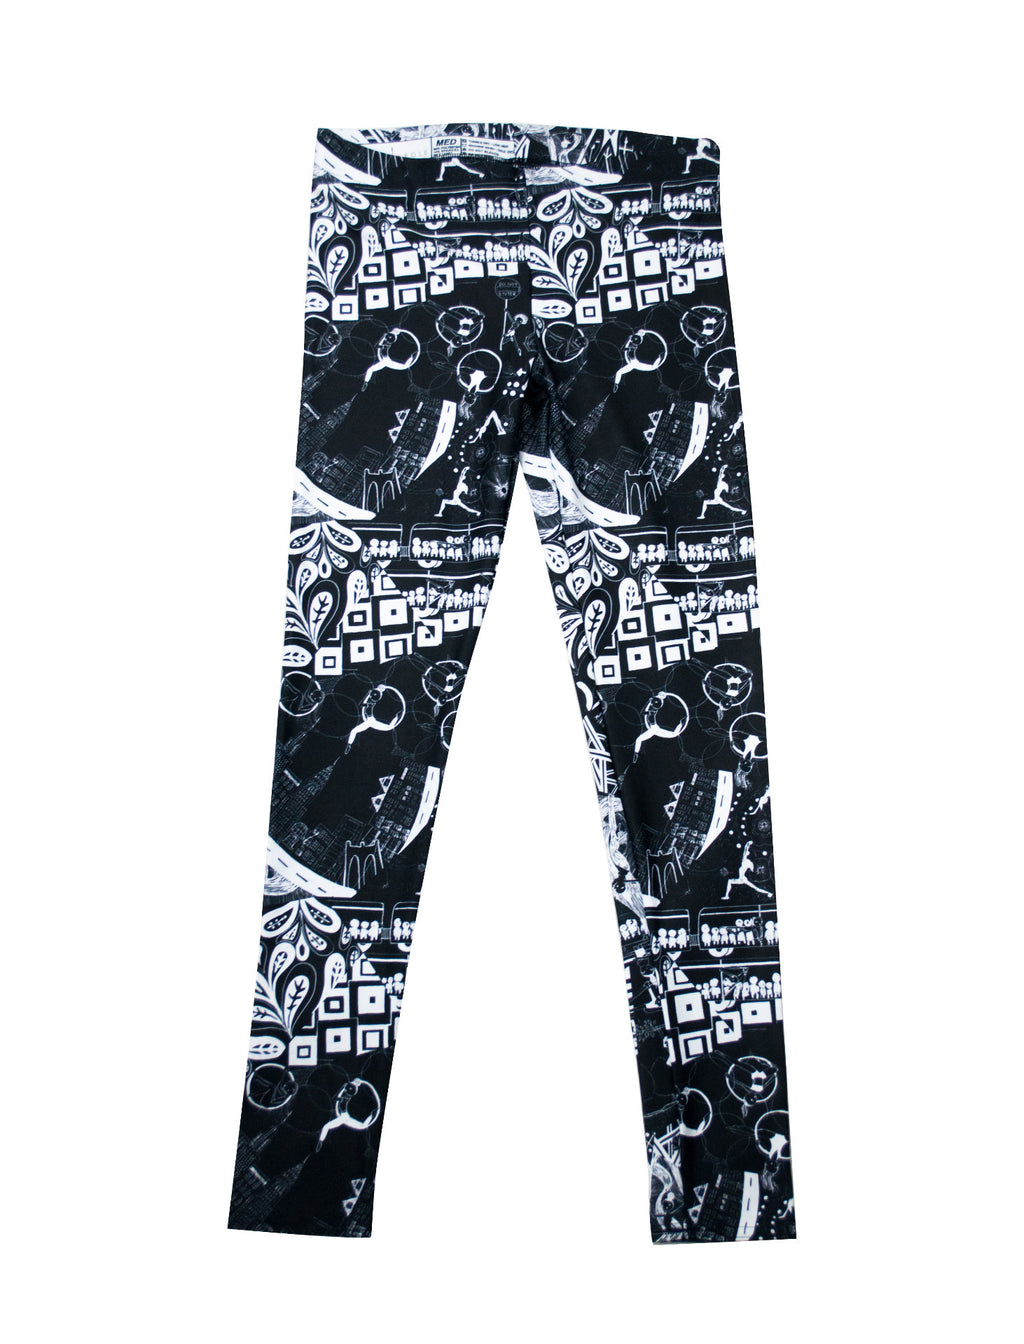 Urban Aerialist Leggings - Push + Pole - 1